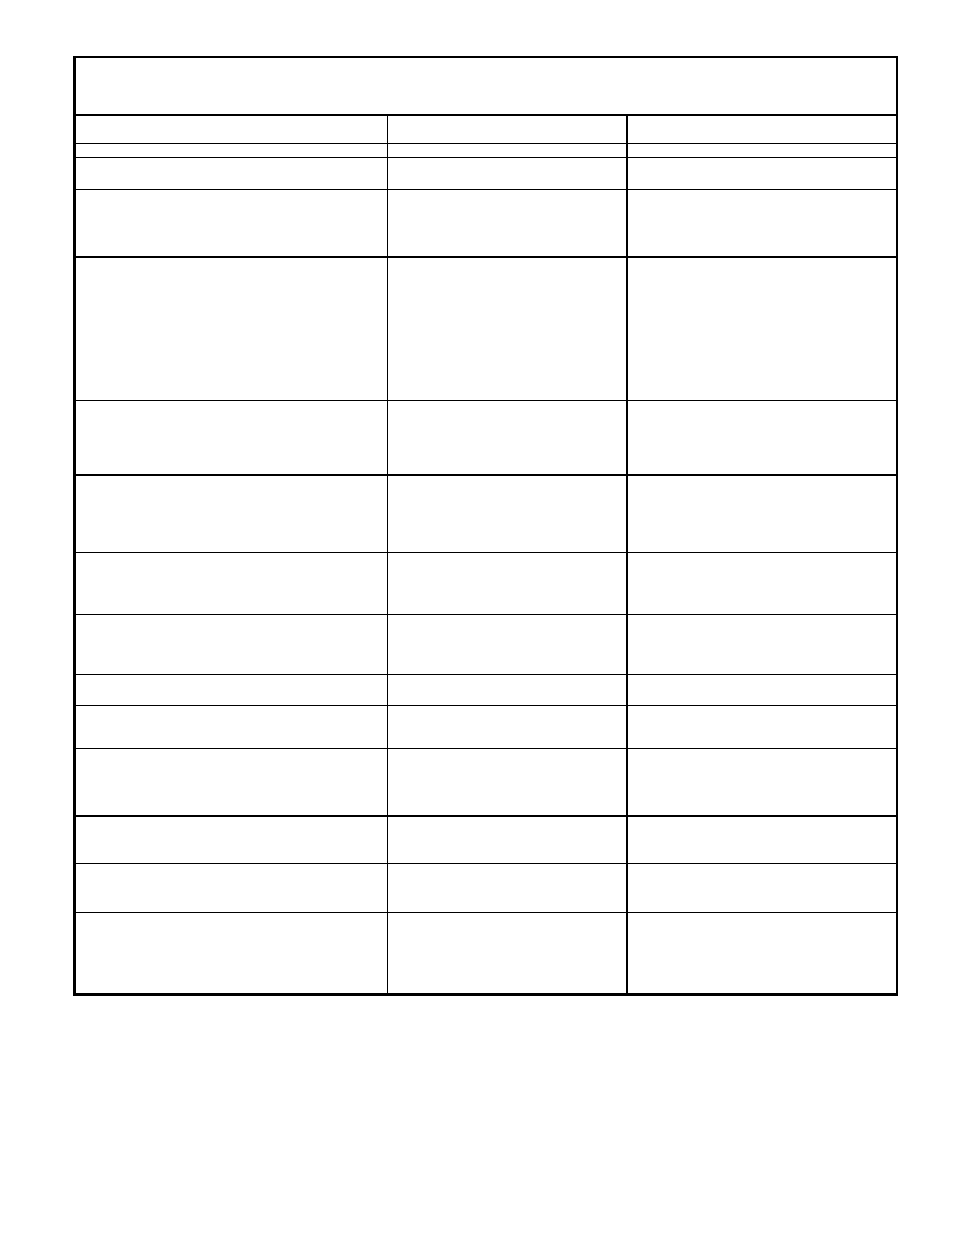 Epson GT-15000 User Manual | 3 pages